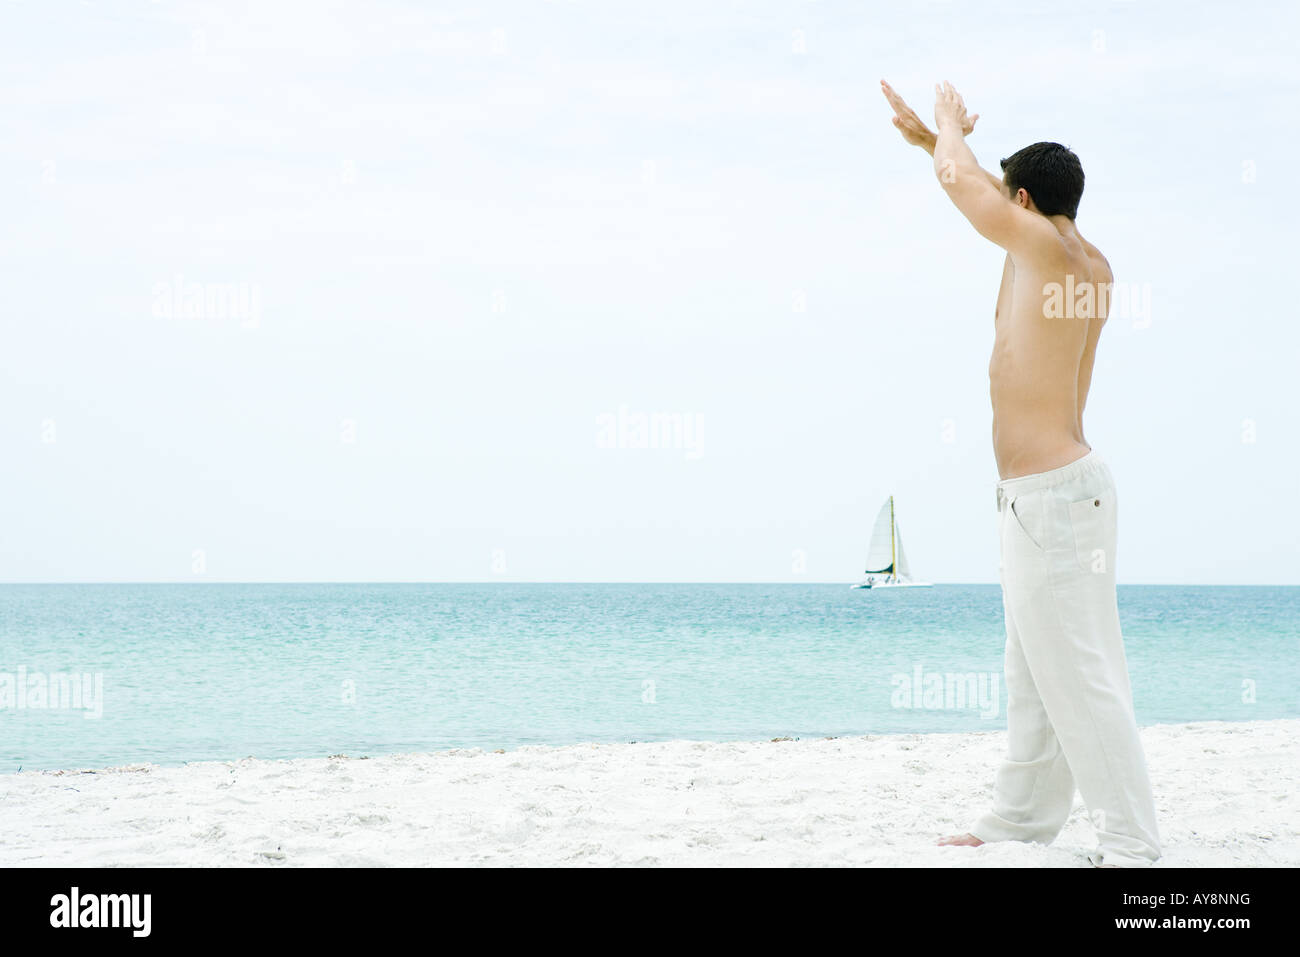 Man standing at the beach with arms raised, looking at view, side view - Stock Image